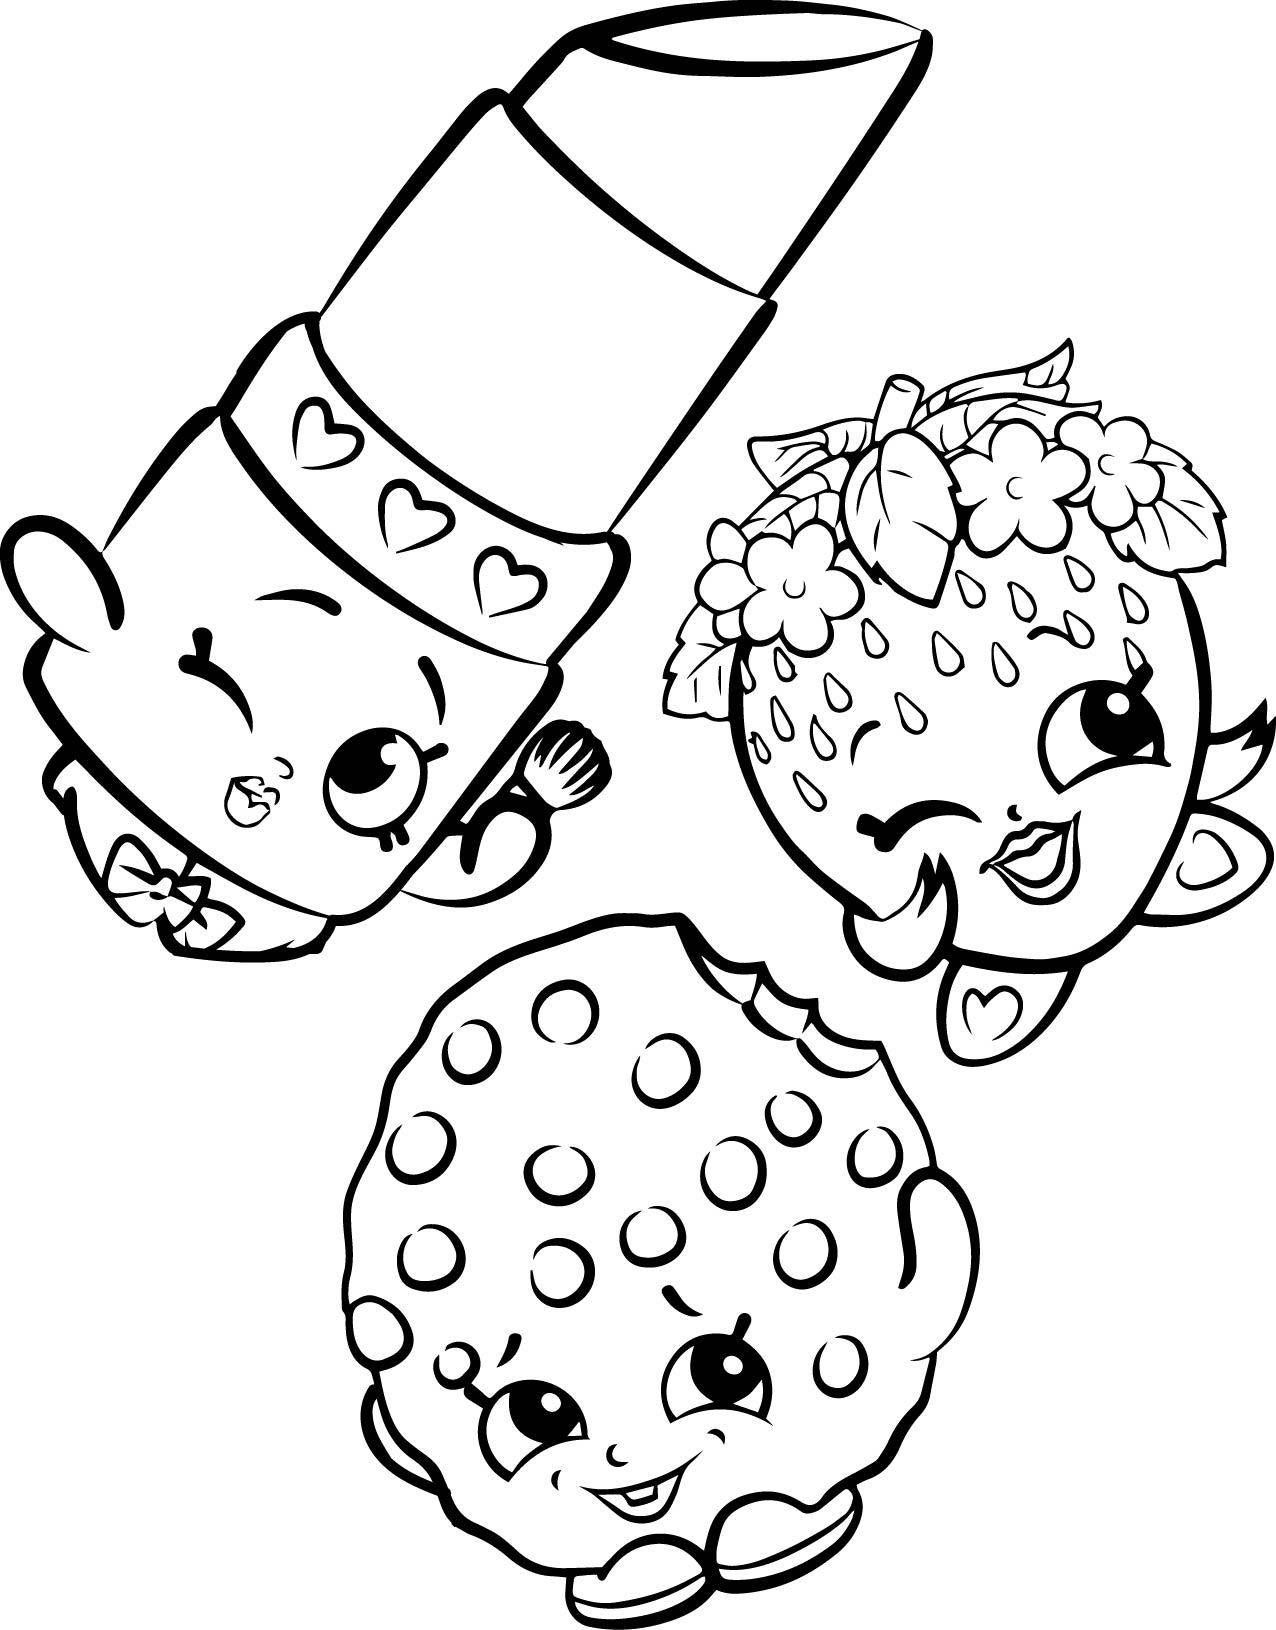 free coloring pages for kids pdf - shopkins coloring pages best coloring pages for kids